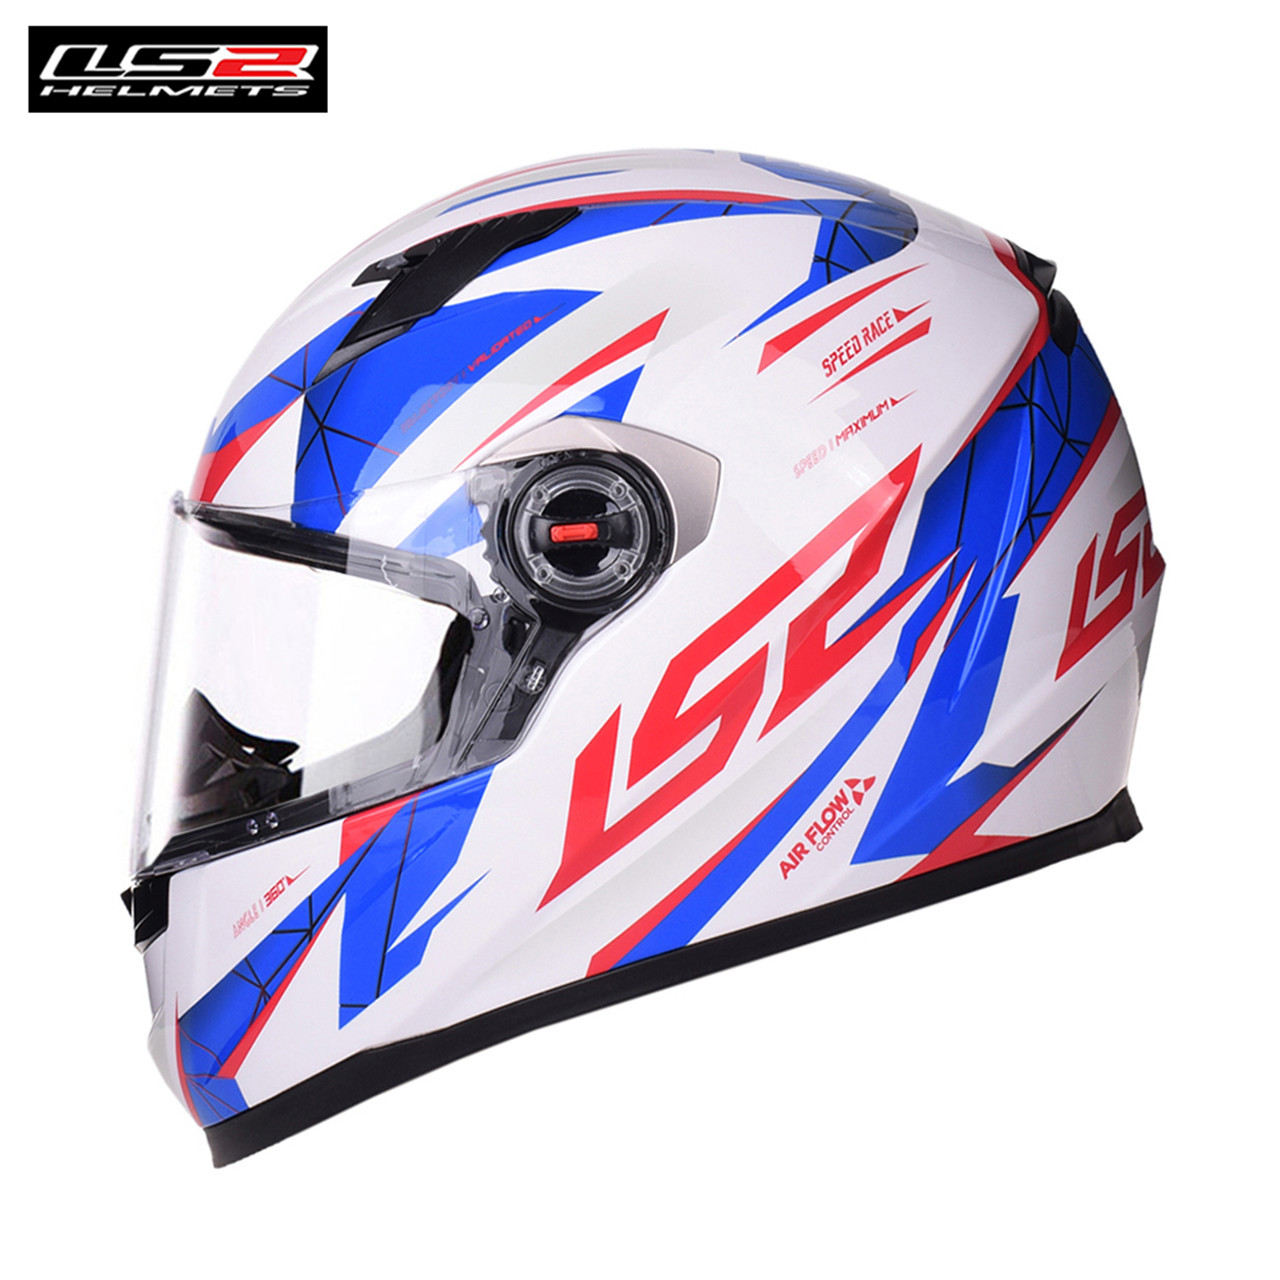 LS2 Helmets 2018 Motorcycle Full Face Racing Helmet Moto Cascos Capacete ls2 Barros Air Flow ls2 helmet